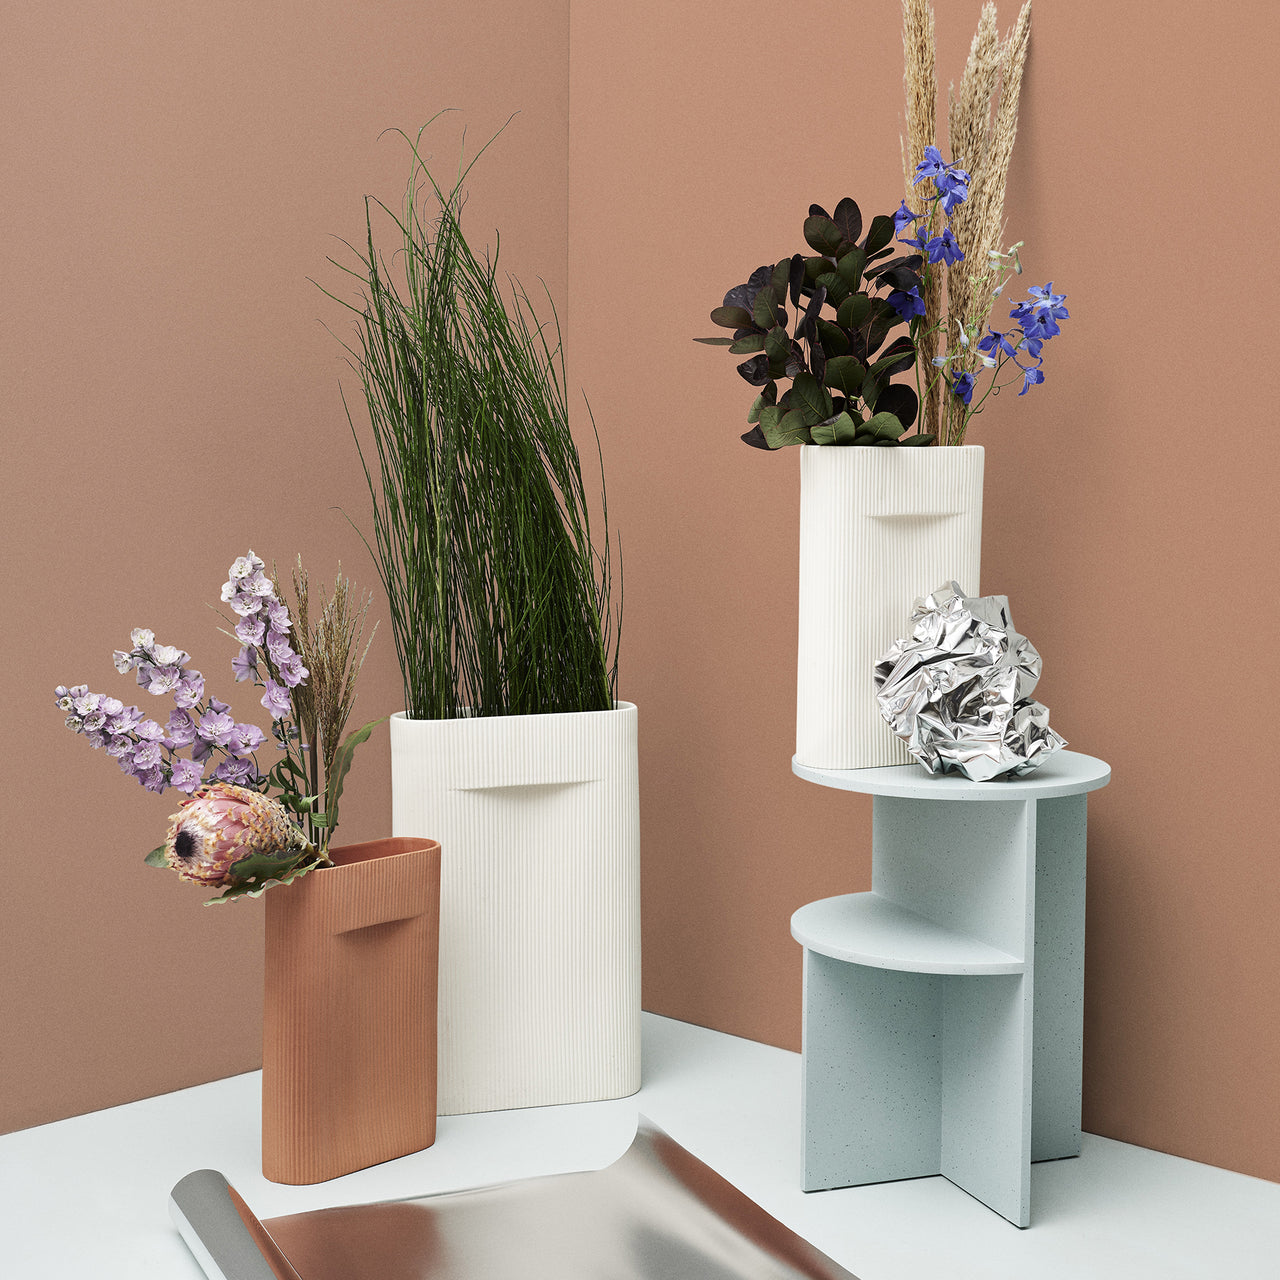 Halves Side Table | Buy Muuto online at A+R